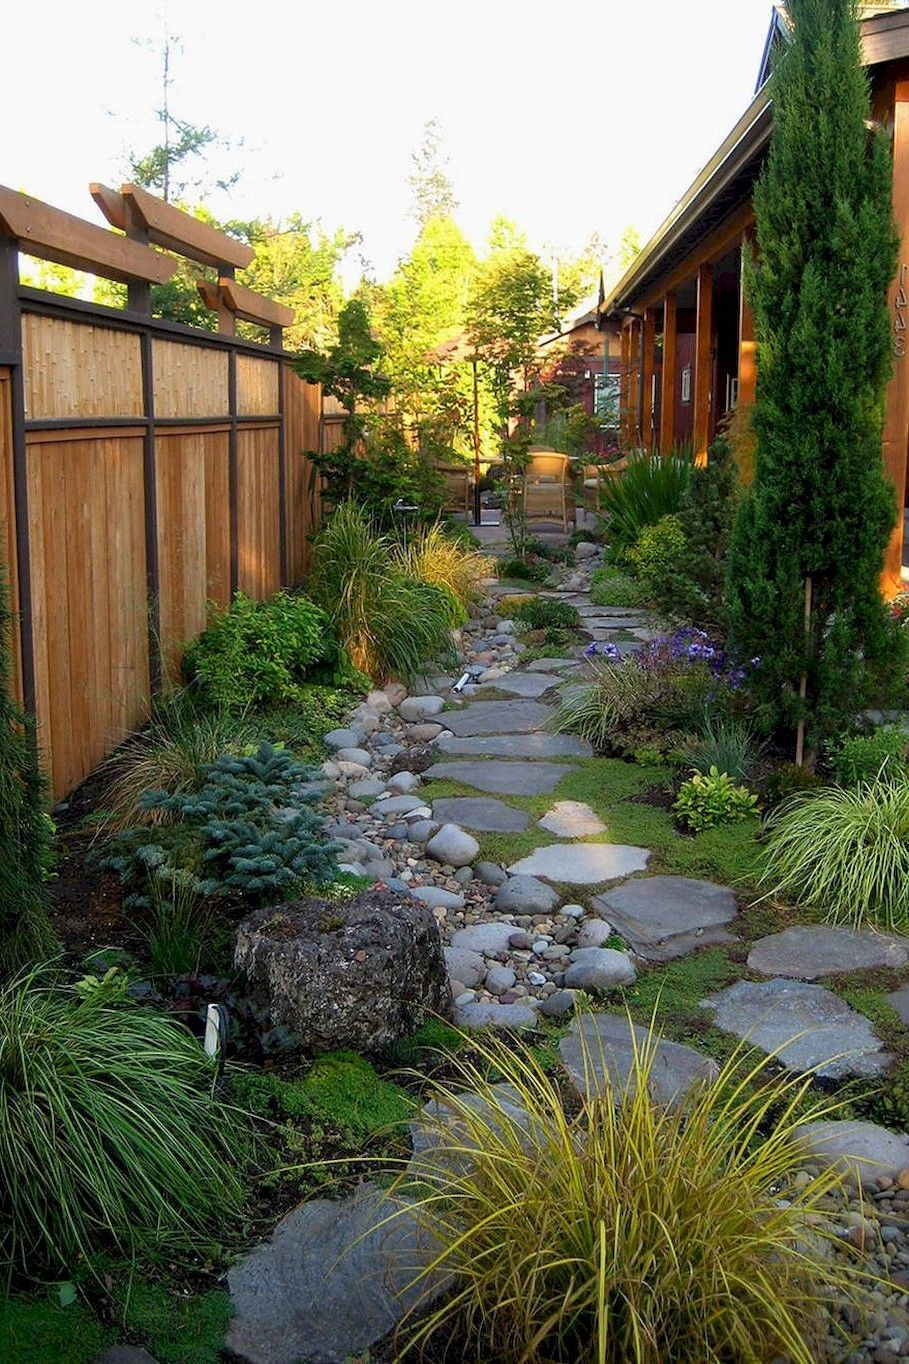 53 gorgeous backyard design ideas on a budget in 2020 on gorgeous small backyard landscaping ideas id=29137